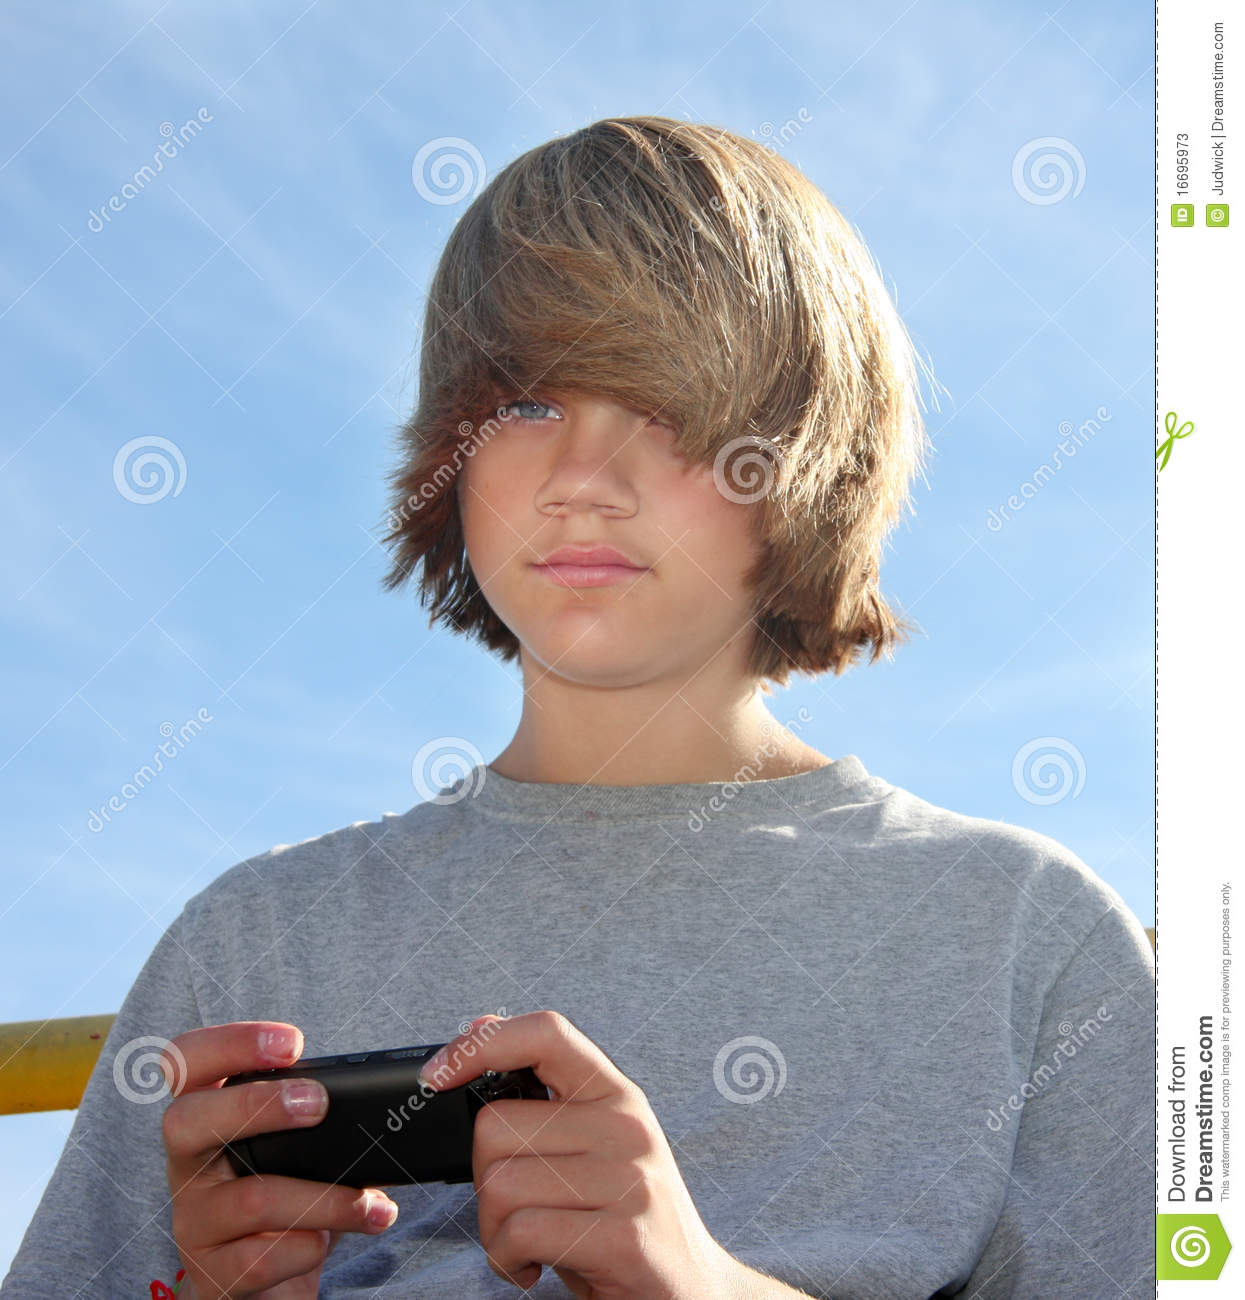 Cute Teen Boy Texting Stock Photos Image 16695973